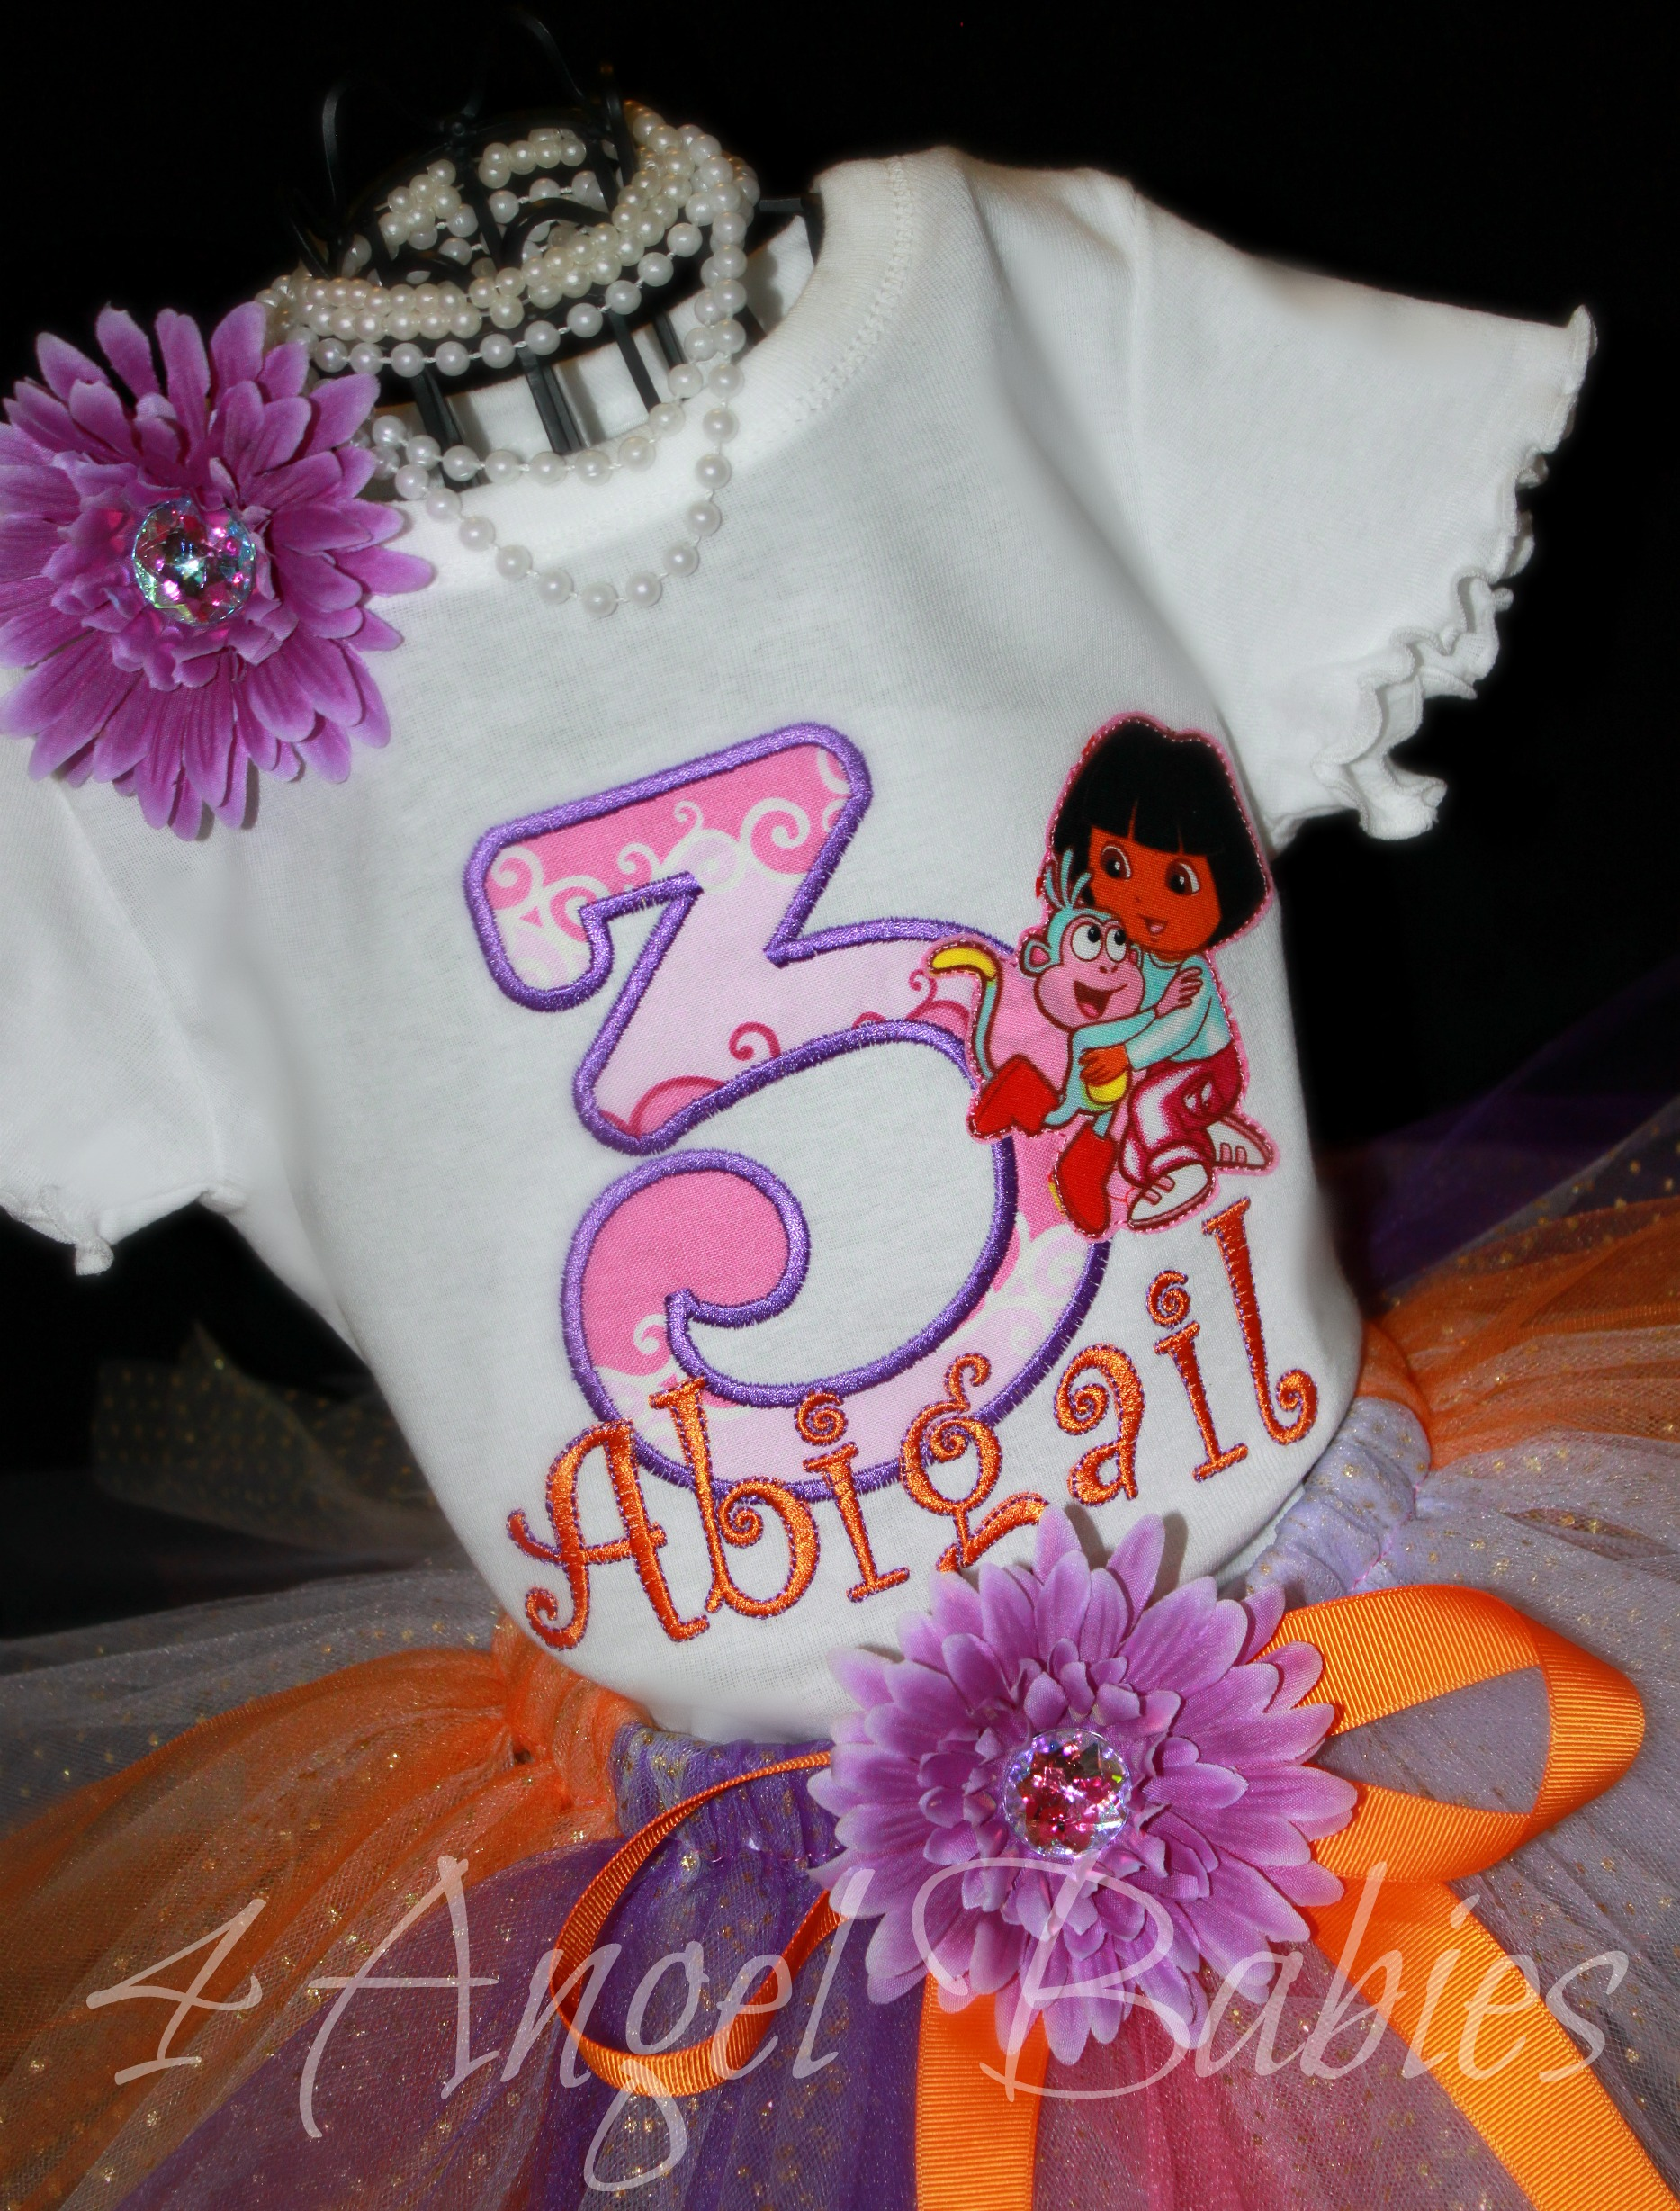 Dora the Explorer Personalized Top with Number or Letter